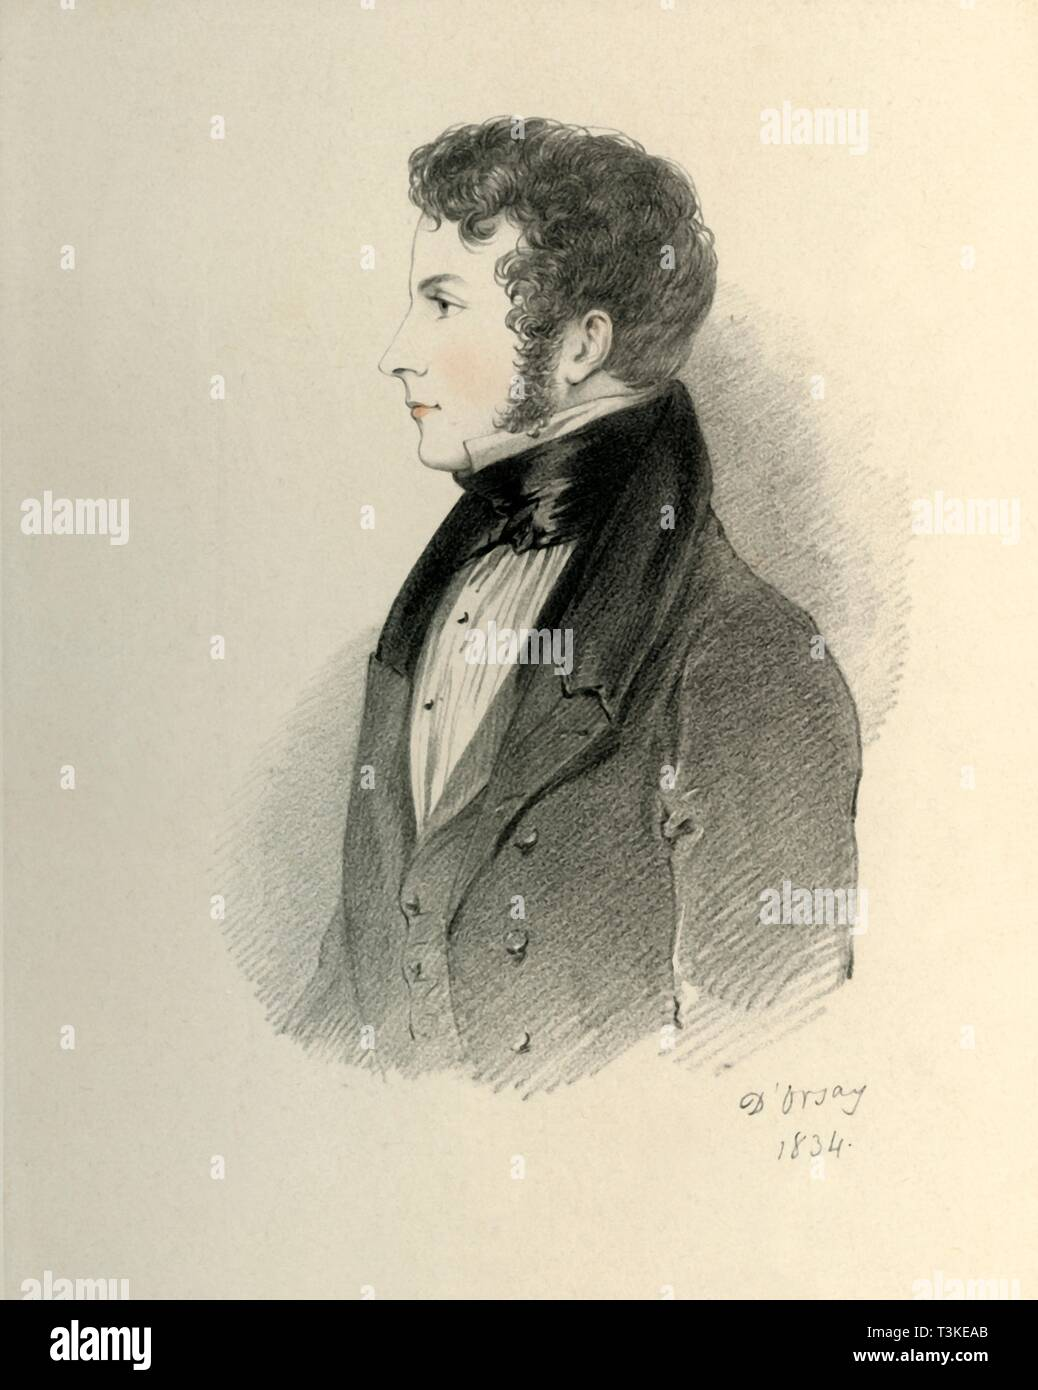 'The Honourable John Ponsonby, afterwards the Earl of Bessborough', 1834. Creator: Alfred d'Orsay. Stock Photo